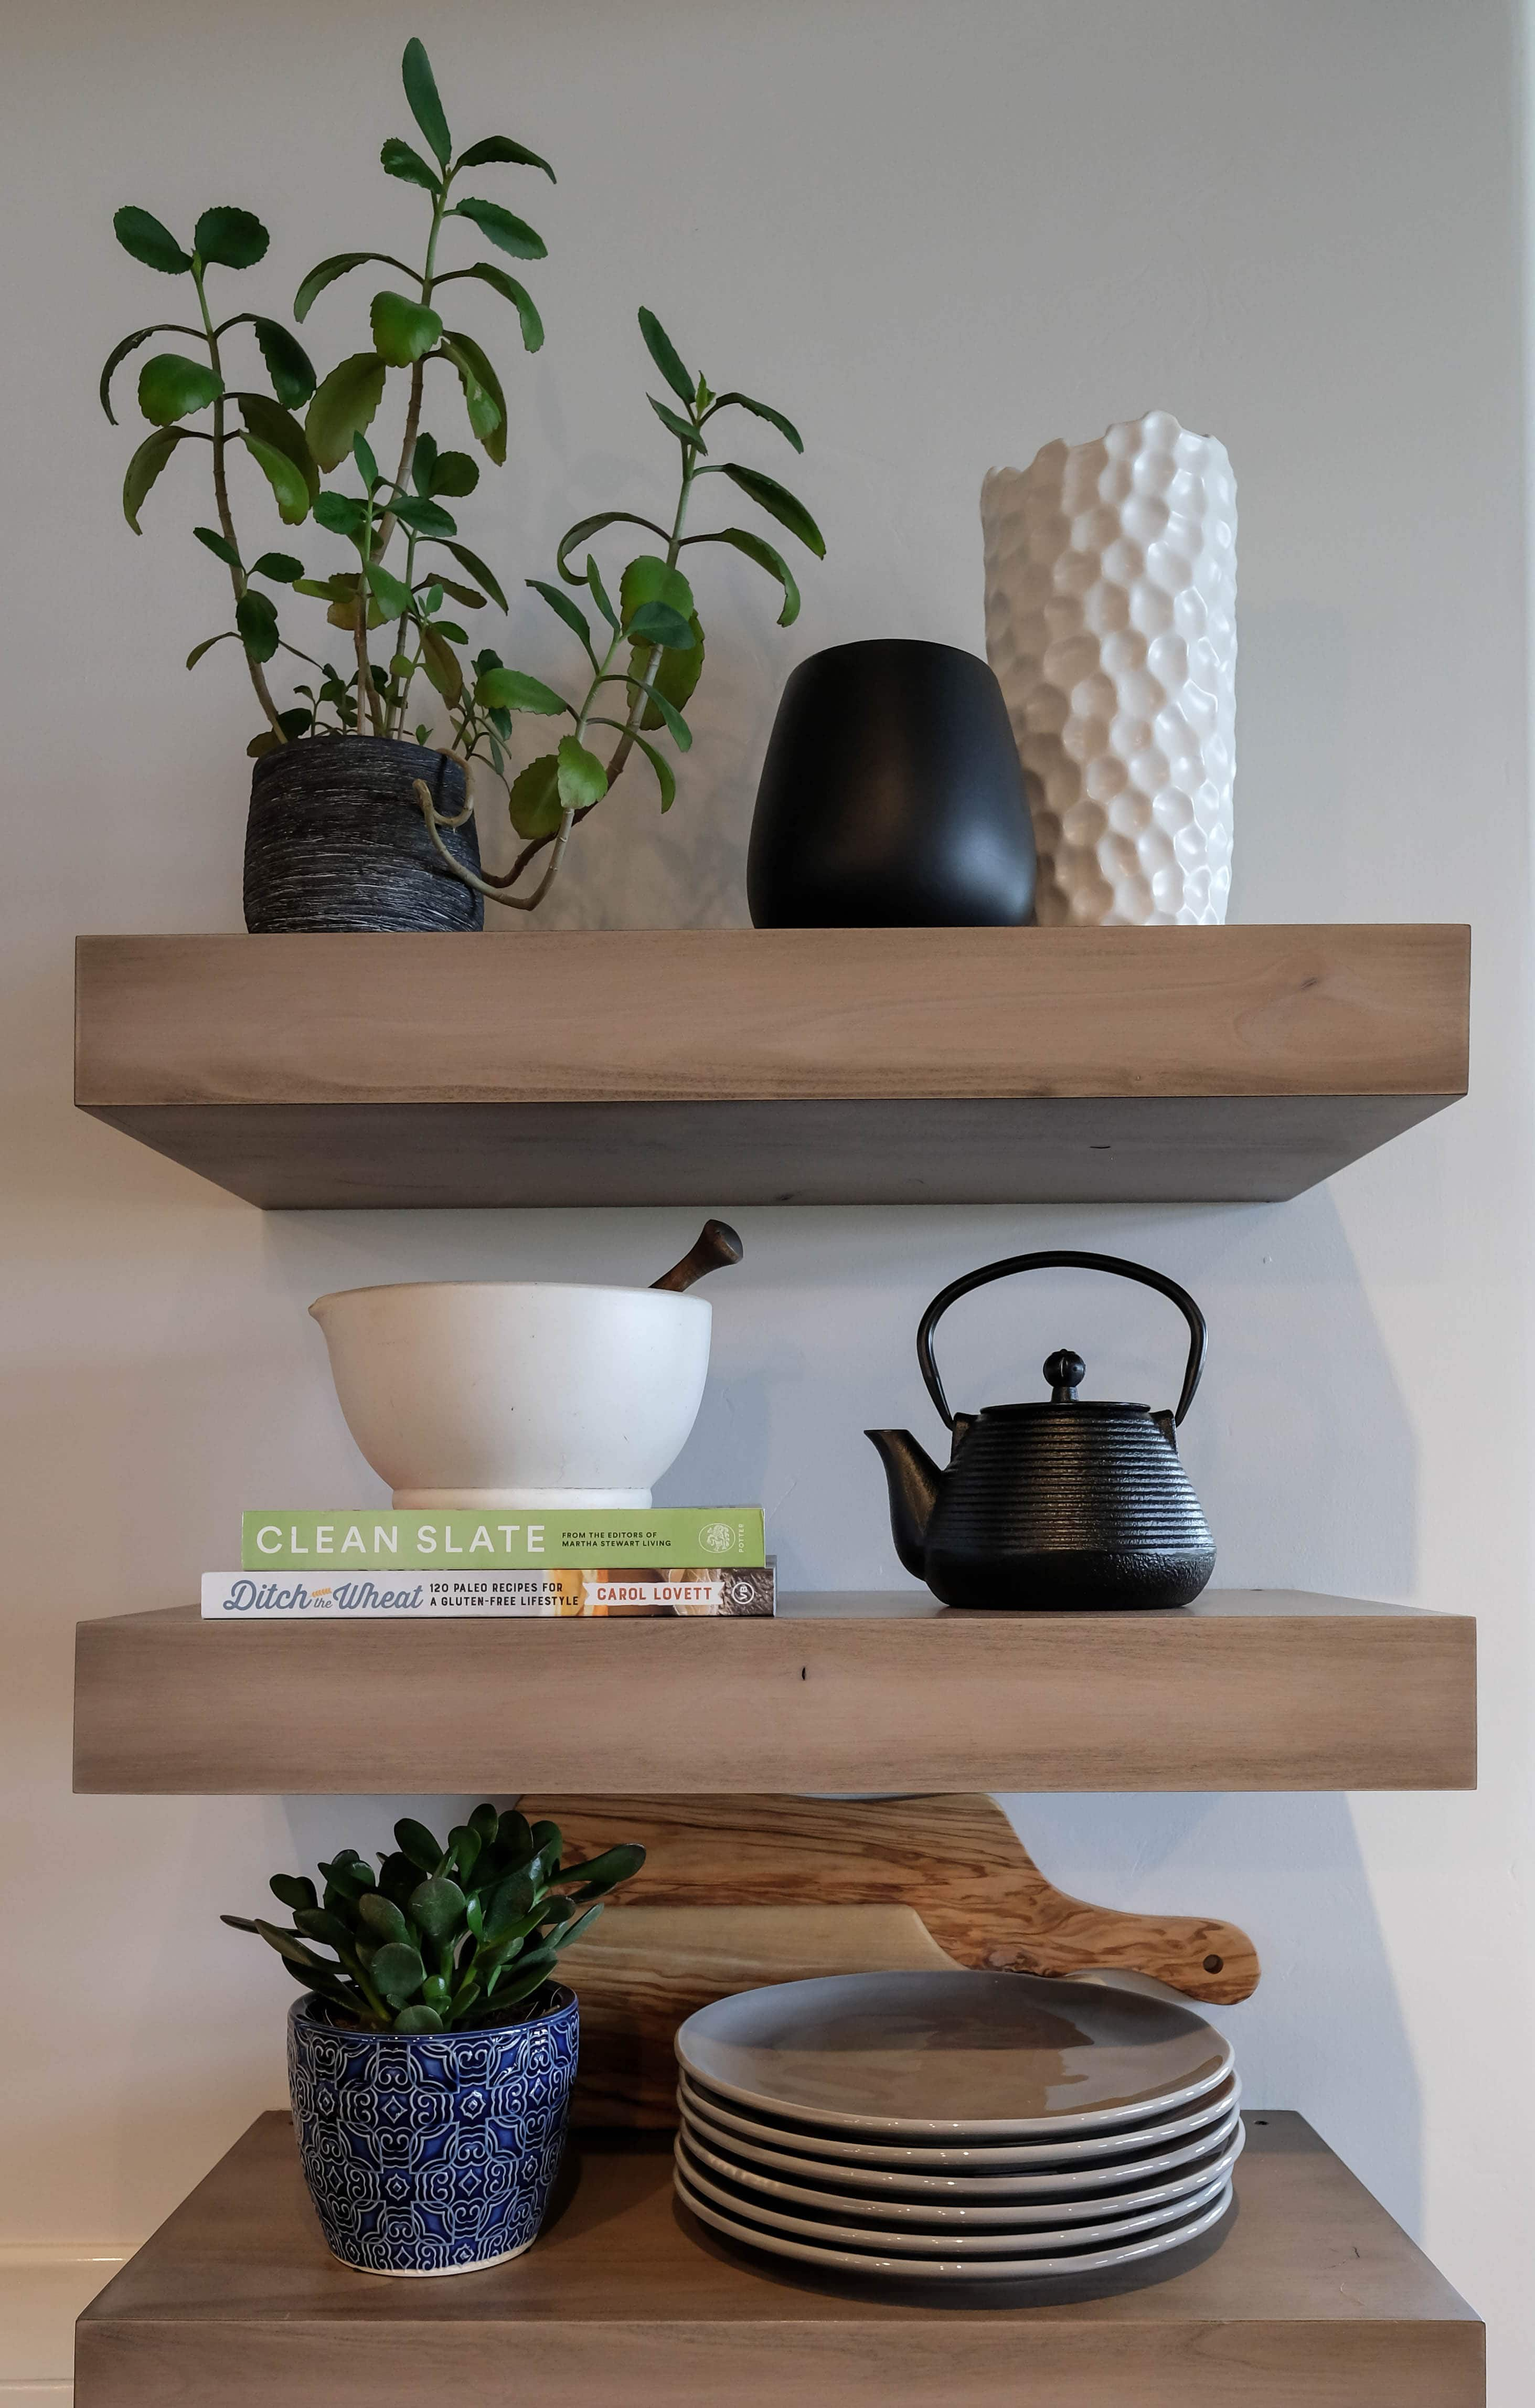 Parade of Homes styled shelf with books, plates, teapot, and plants